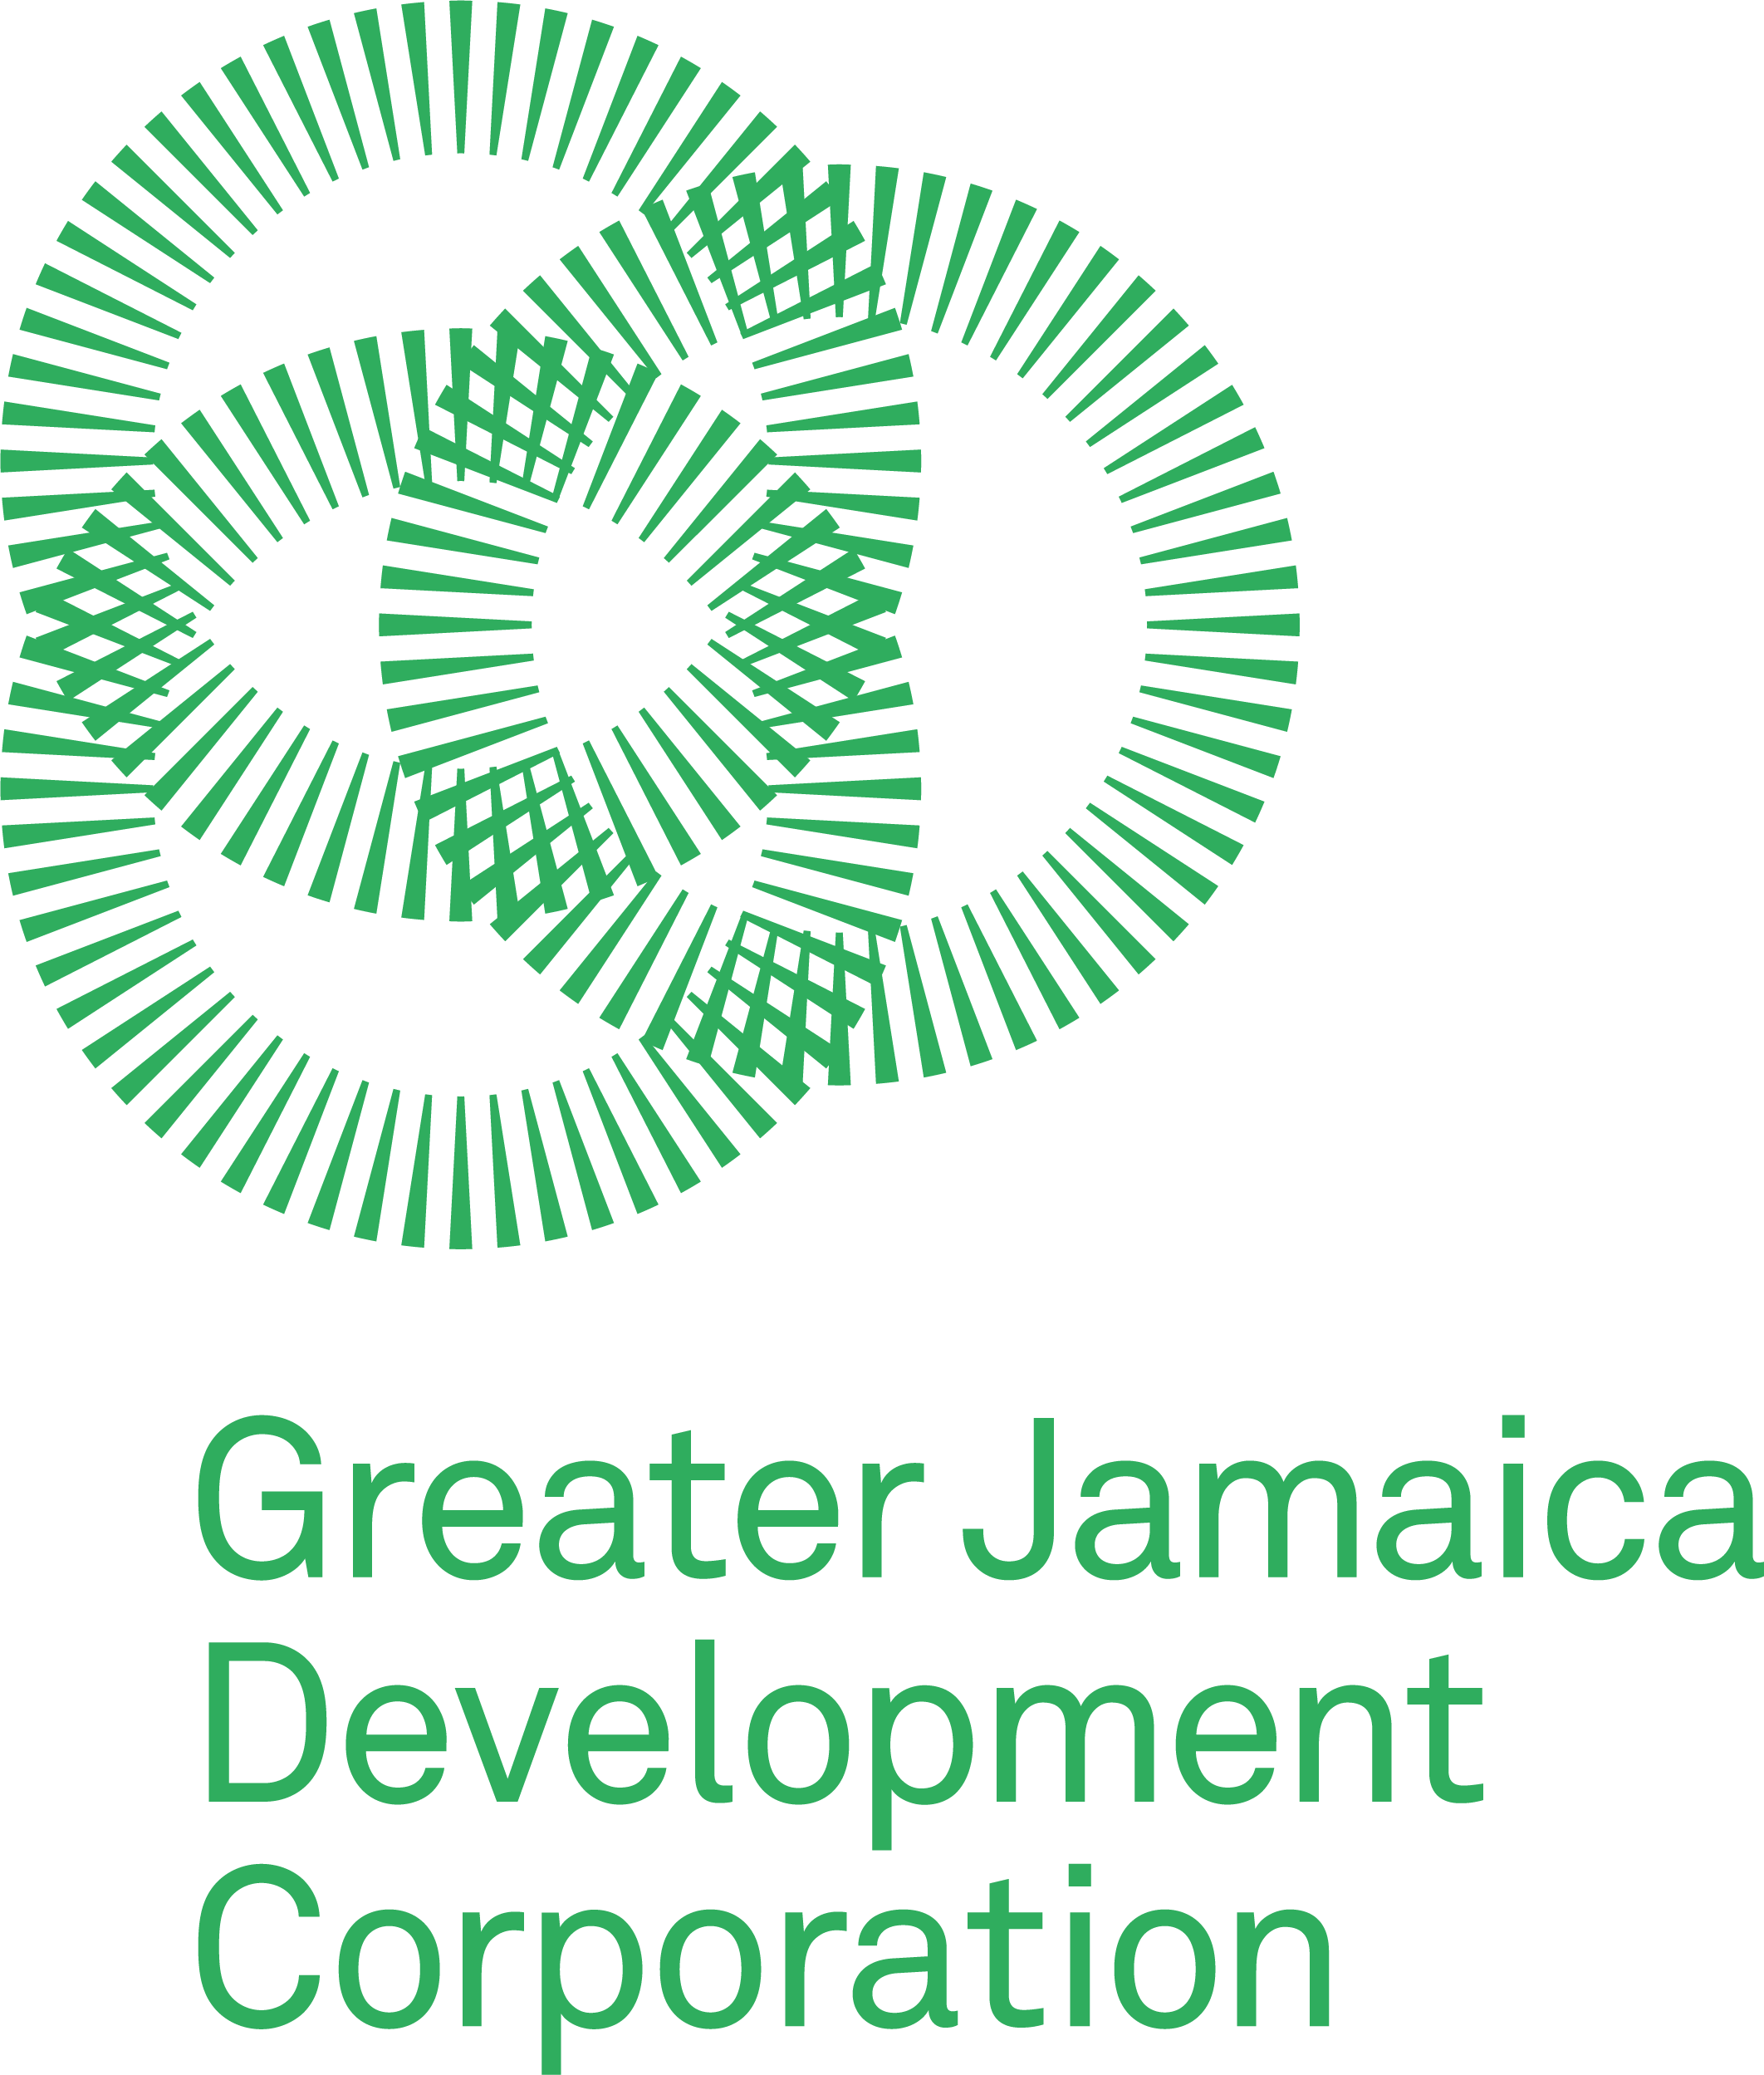 Greater Jamaica